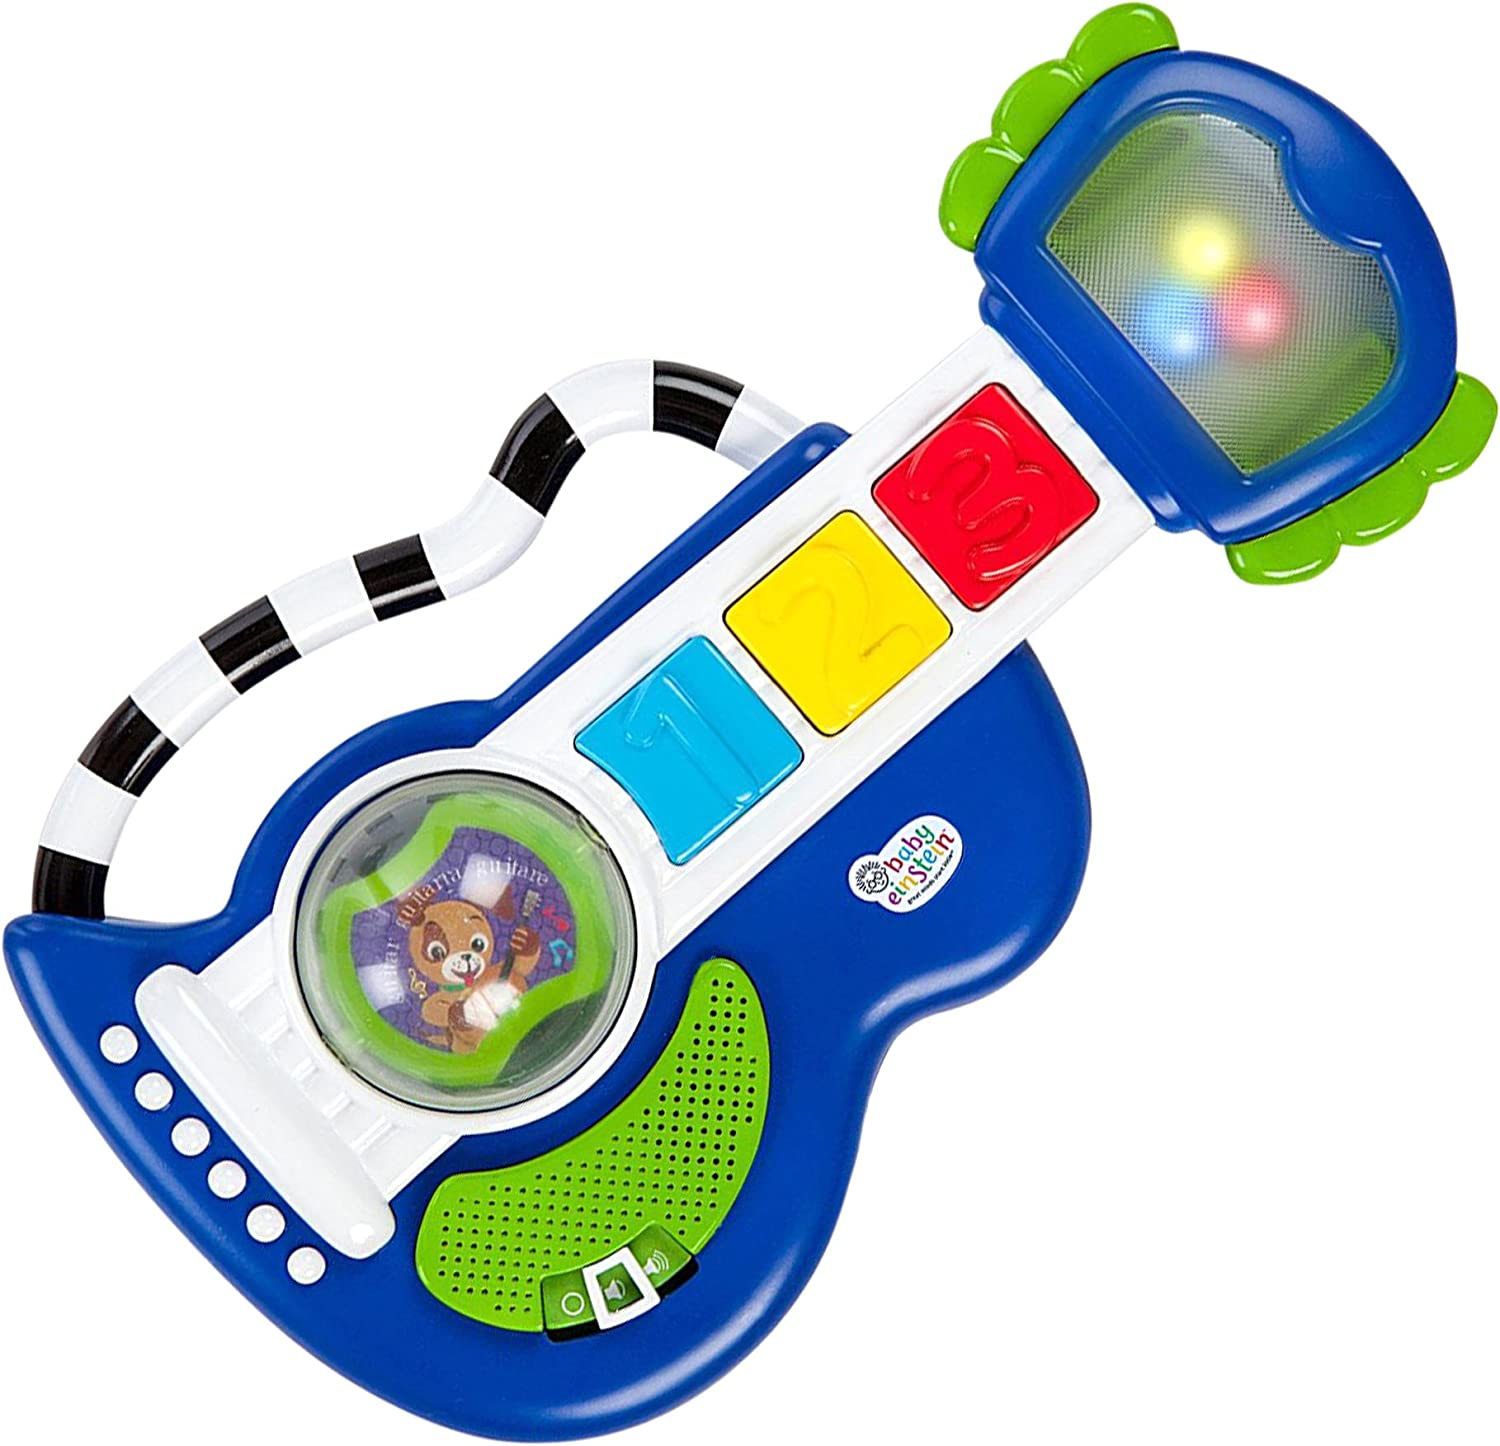 Baby Einstein Light /& Roll Guitar/™ Guitare lumineuse pour petits rockeurs Rock